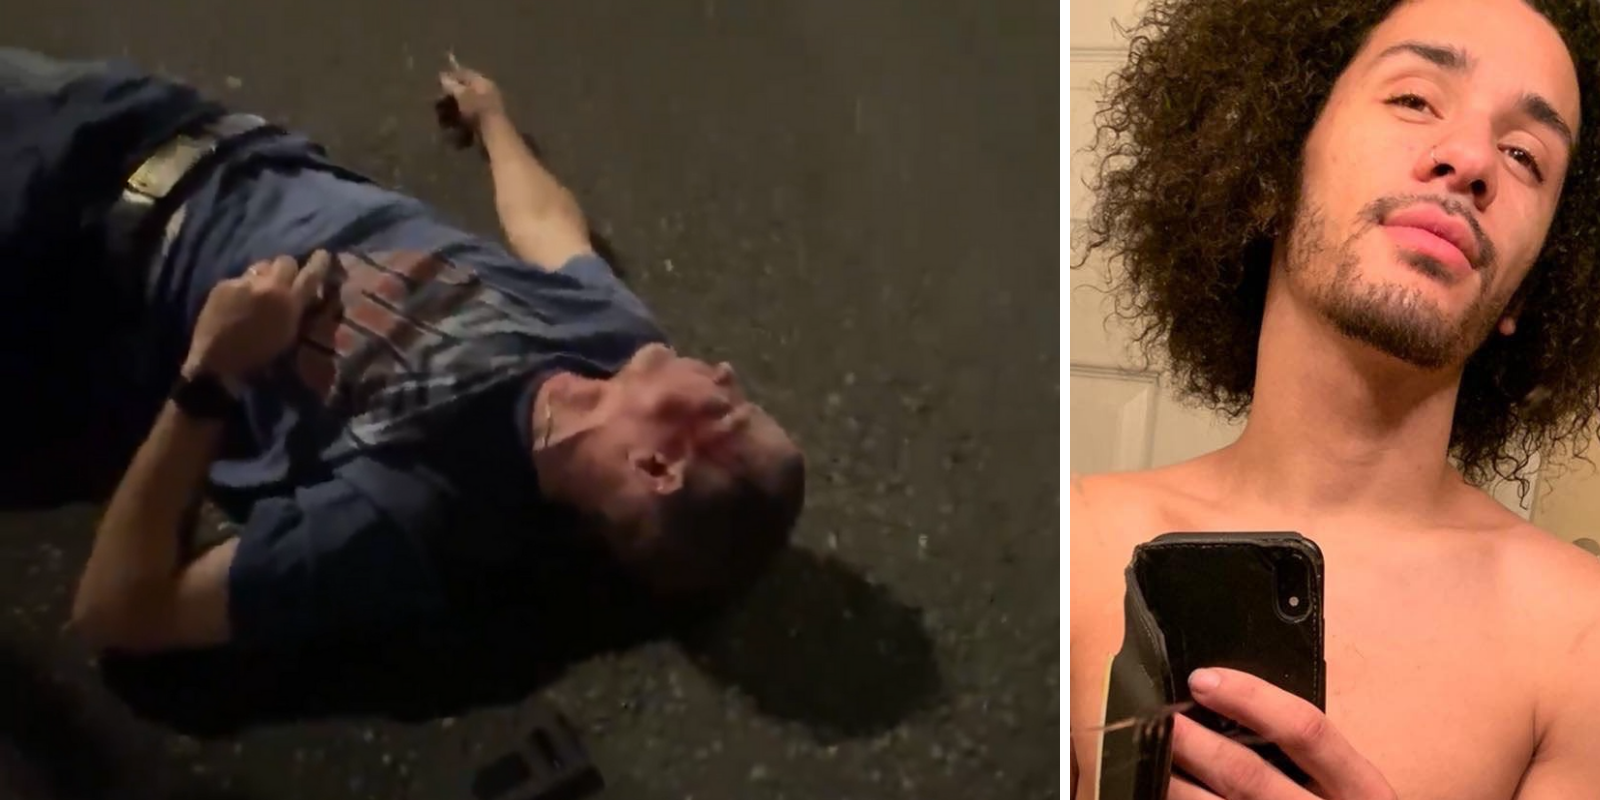 WATCH: BLM rioters beat civilians in Portland streets, leave man bloodied and unresponsive